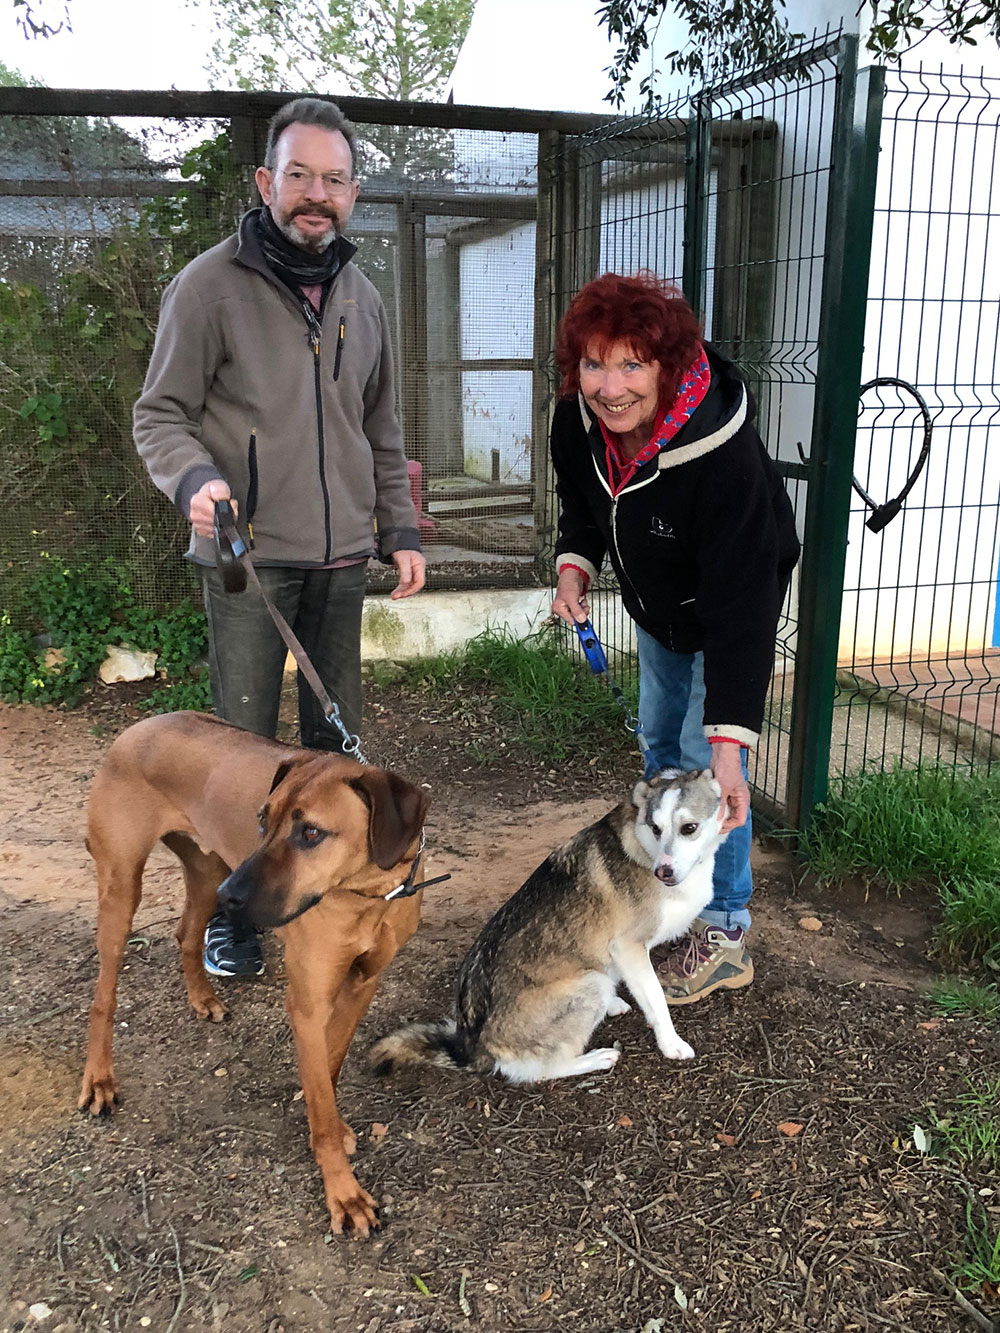 To Portugal: A warm welcome for this delightful pair of hounds from our friends Alan and Heather at Barking Mad Kennels, where they've stayed before. Alan and Heather will deliver them to Yvonne once she arrives.